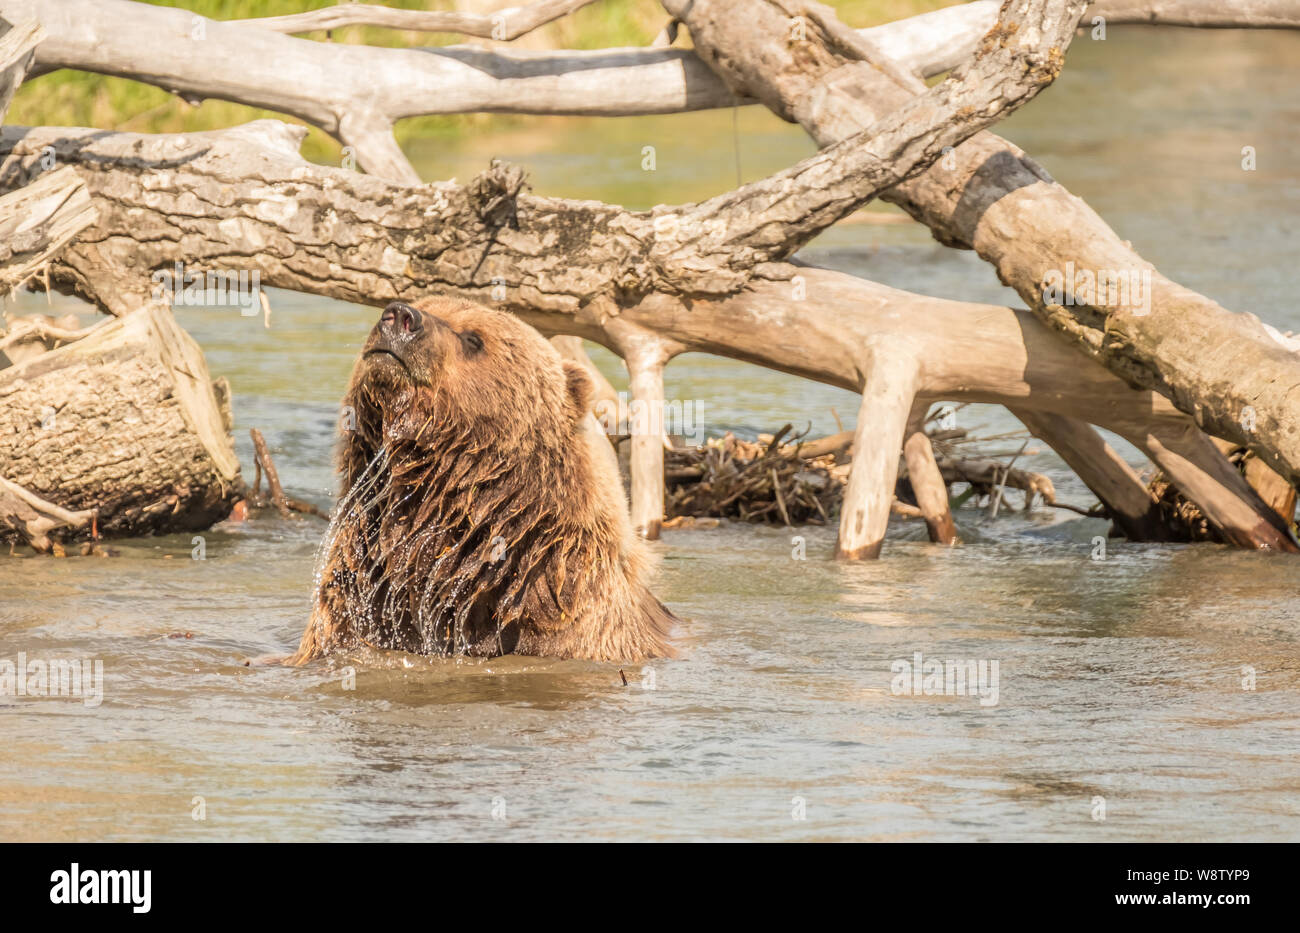 Costal Brown Bear Bathes on a Sunny Day in a Creek near the Runway at Bear Mountain Lodge, Chinitna Bay, Nikiski, Alaska, USA Stock Photo